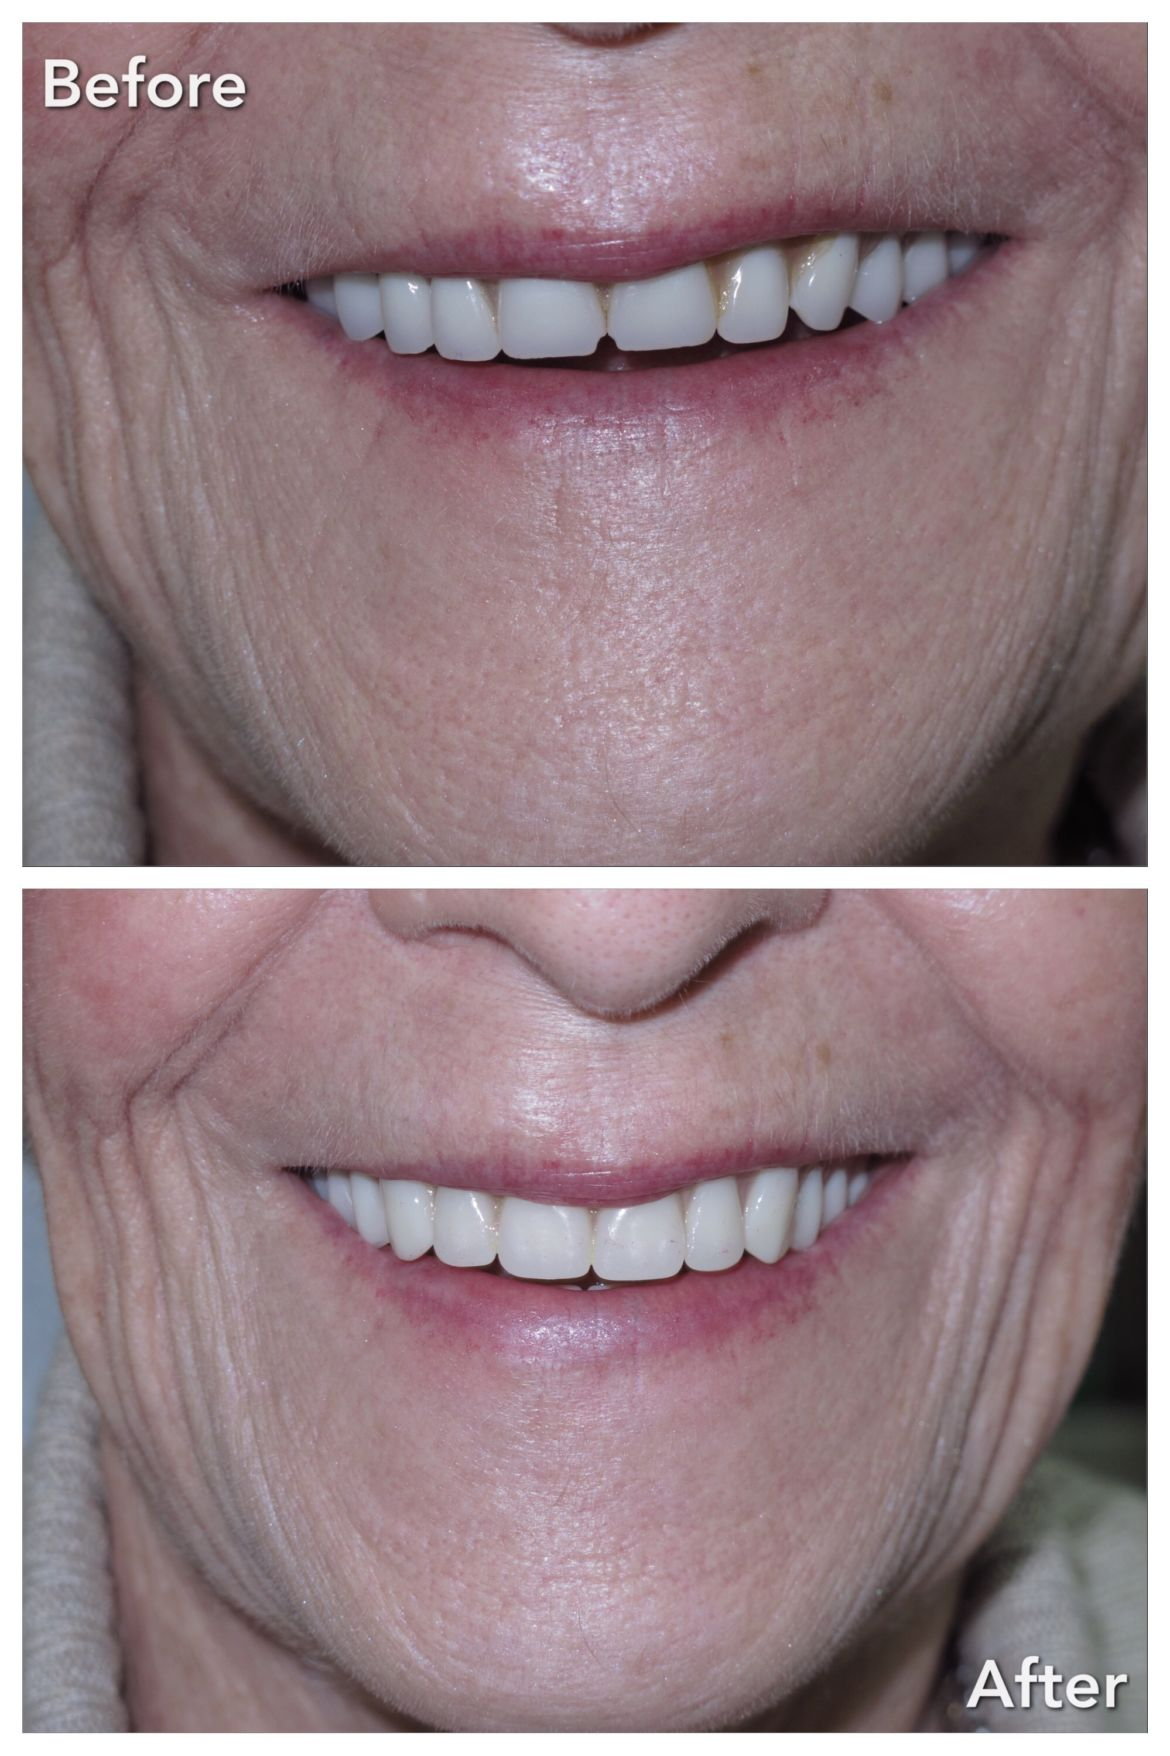 Complete Upper & Lower Treatment